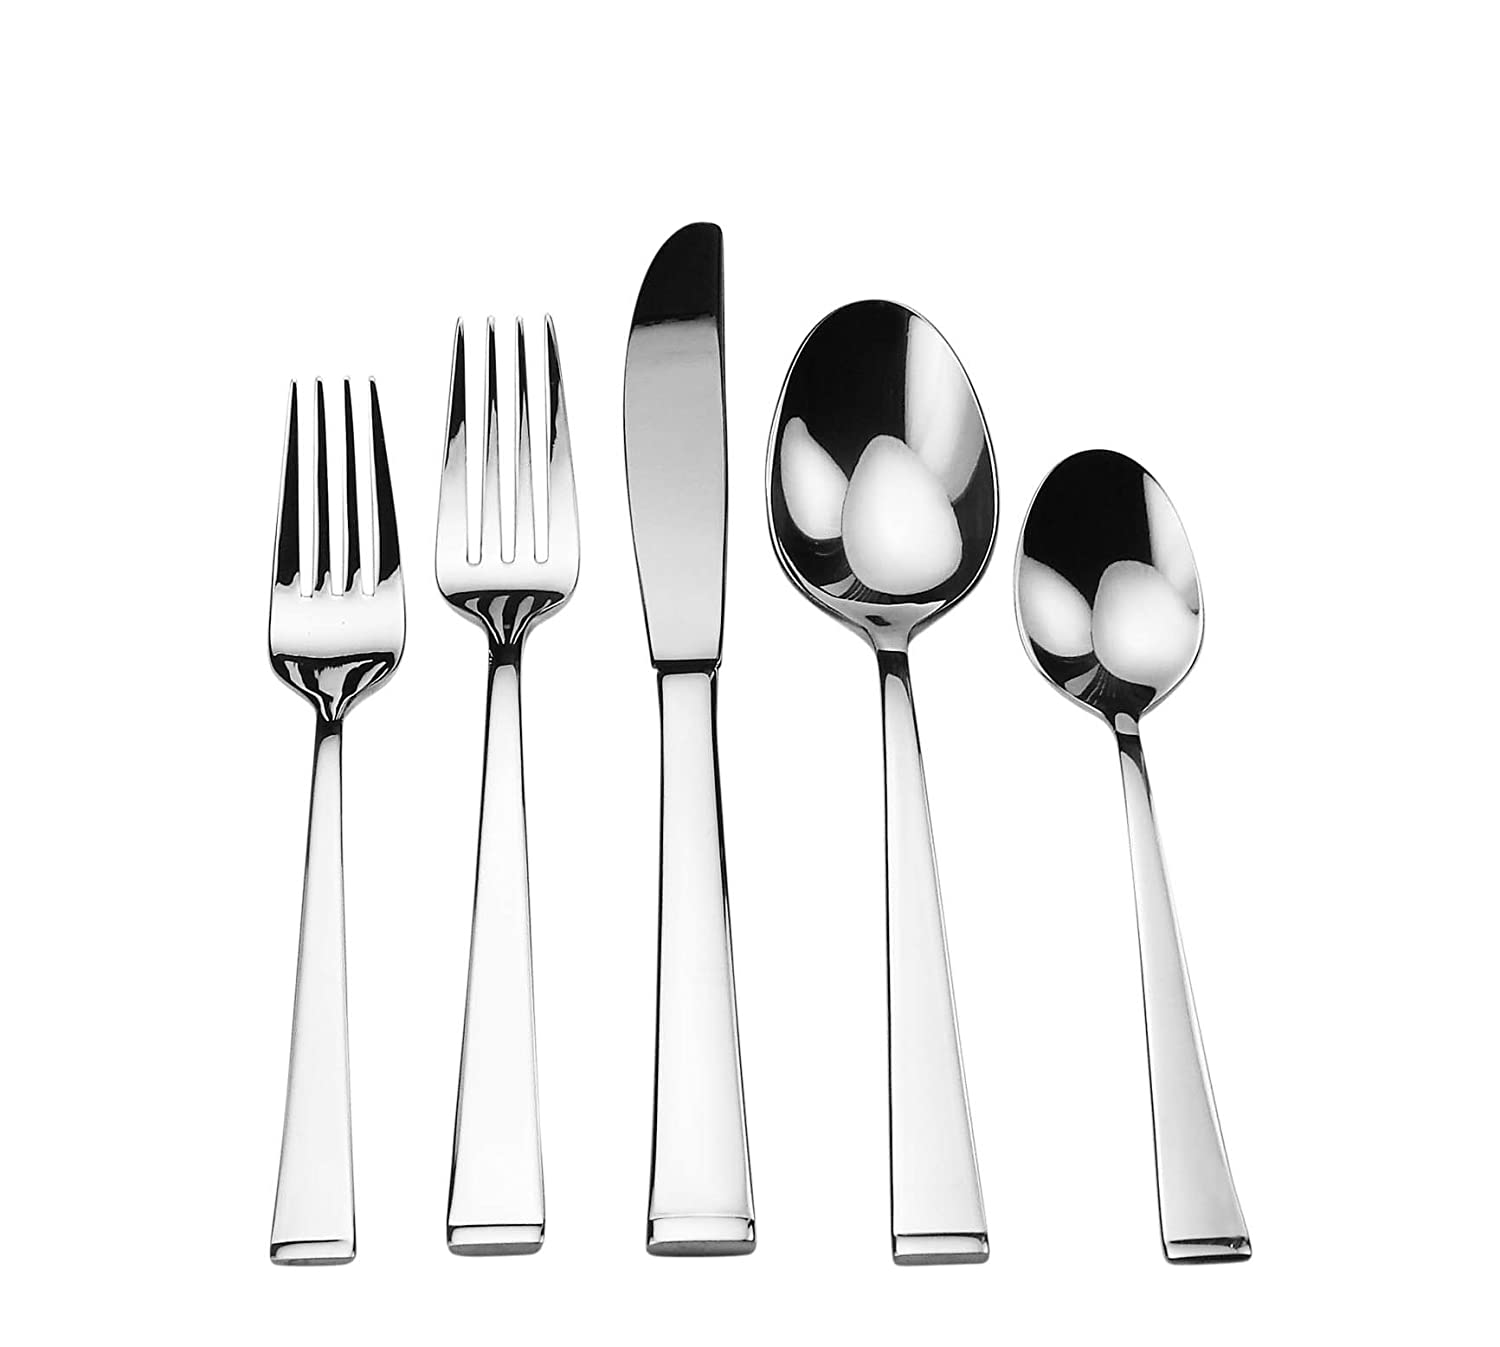 Splendide Atom 18/10 Stainless Steel flatware 20 Piece Set with Service for 4